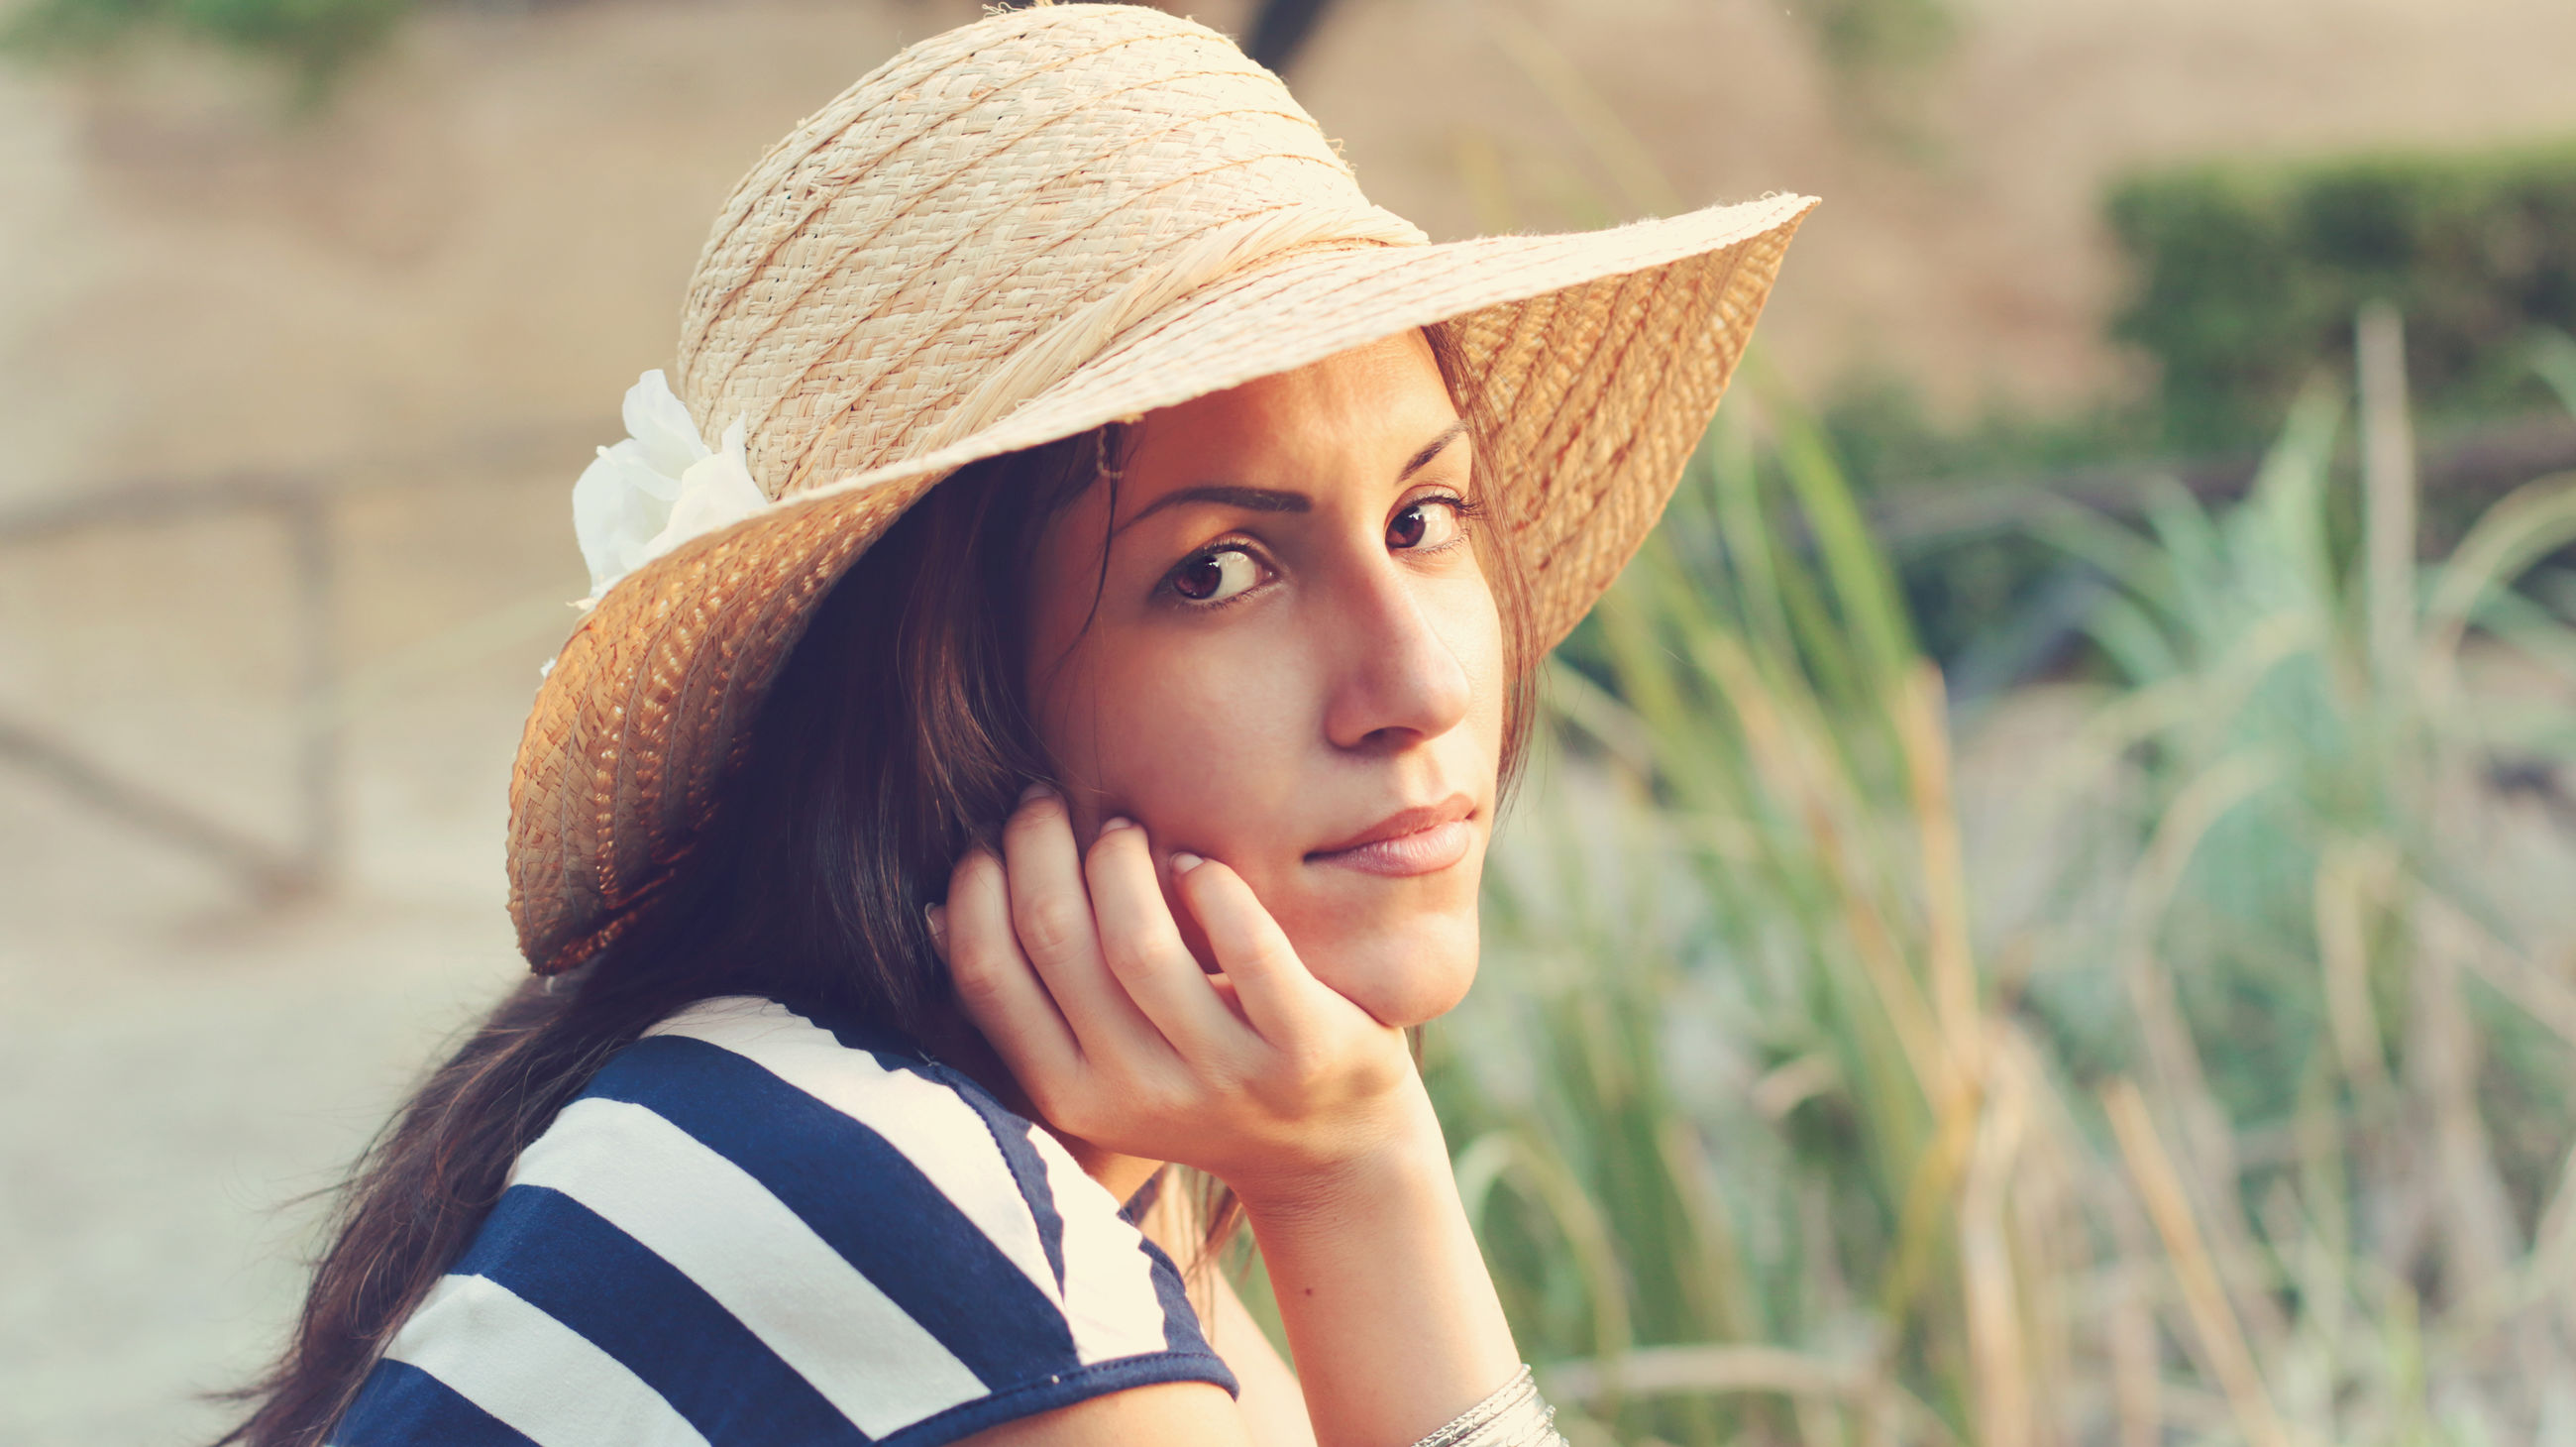 Portrait of young woman wearing hat against plants